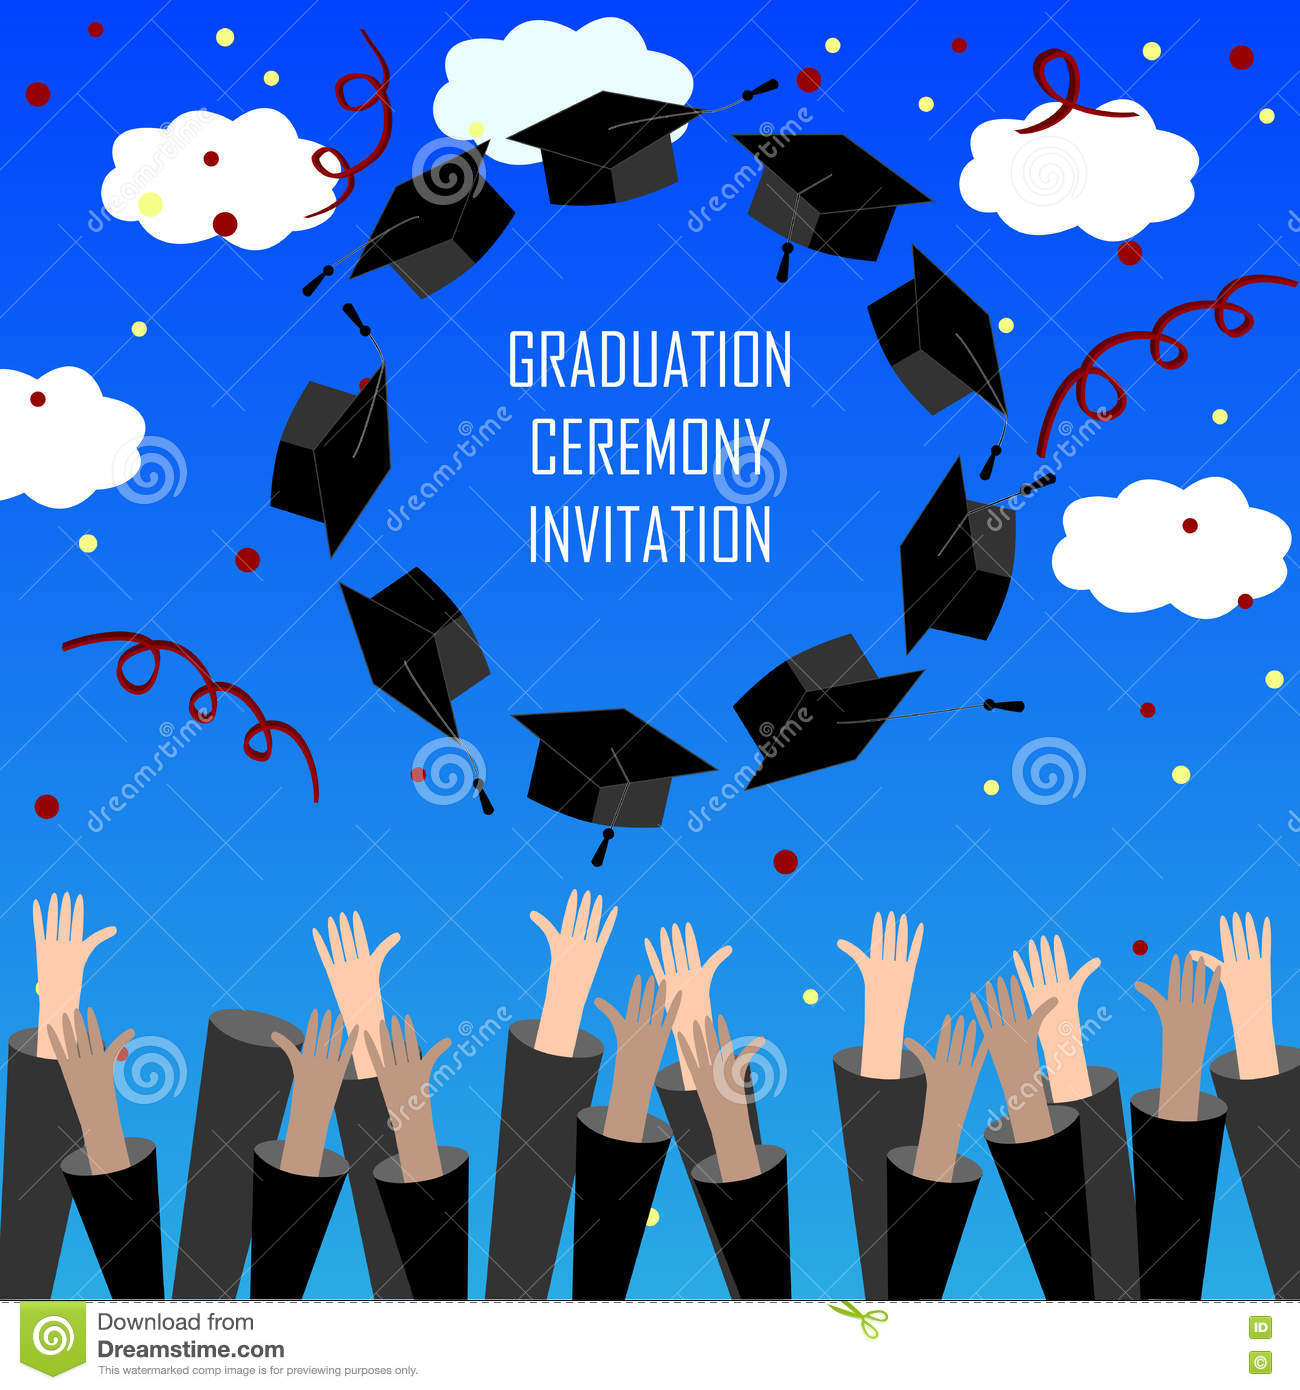 Graduation Background Pictures Many HD Wallpaper